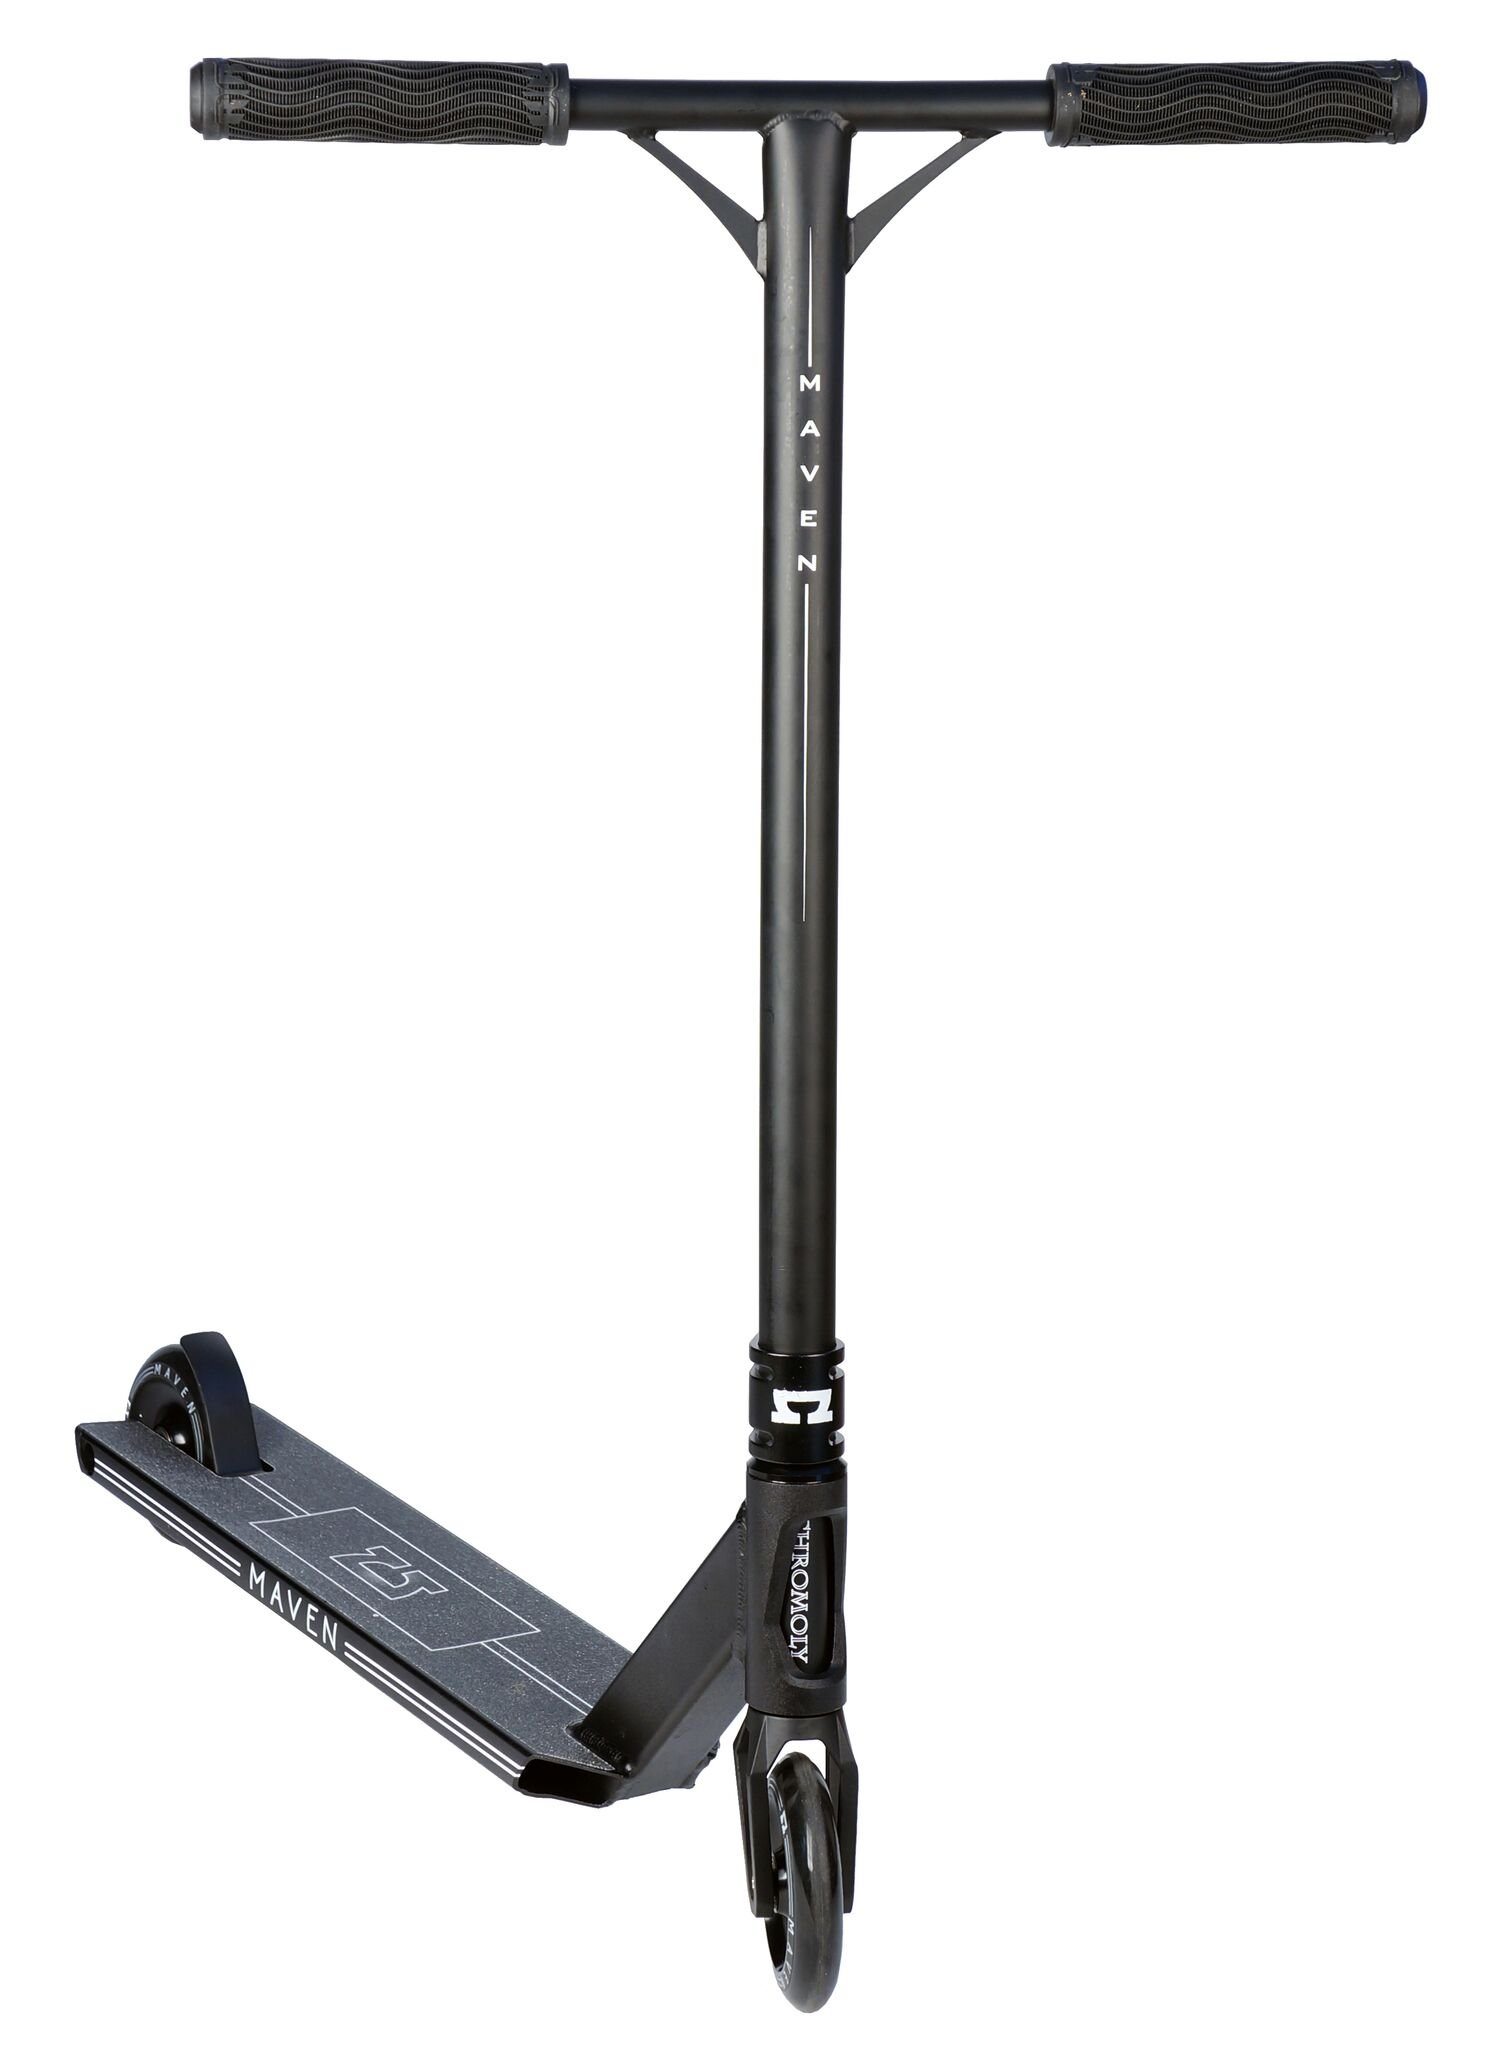 Ao Maven Freestyle Complete Pro Scooter (Black)